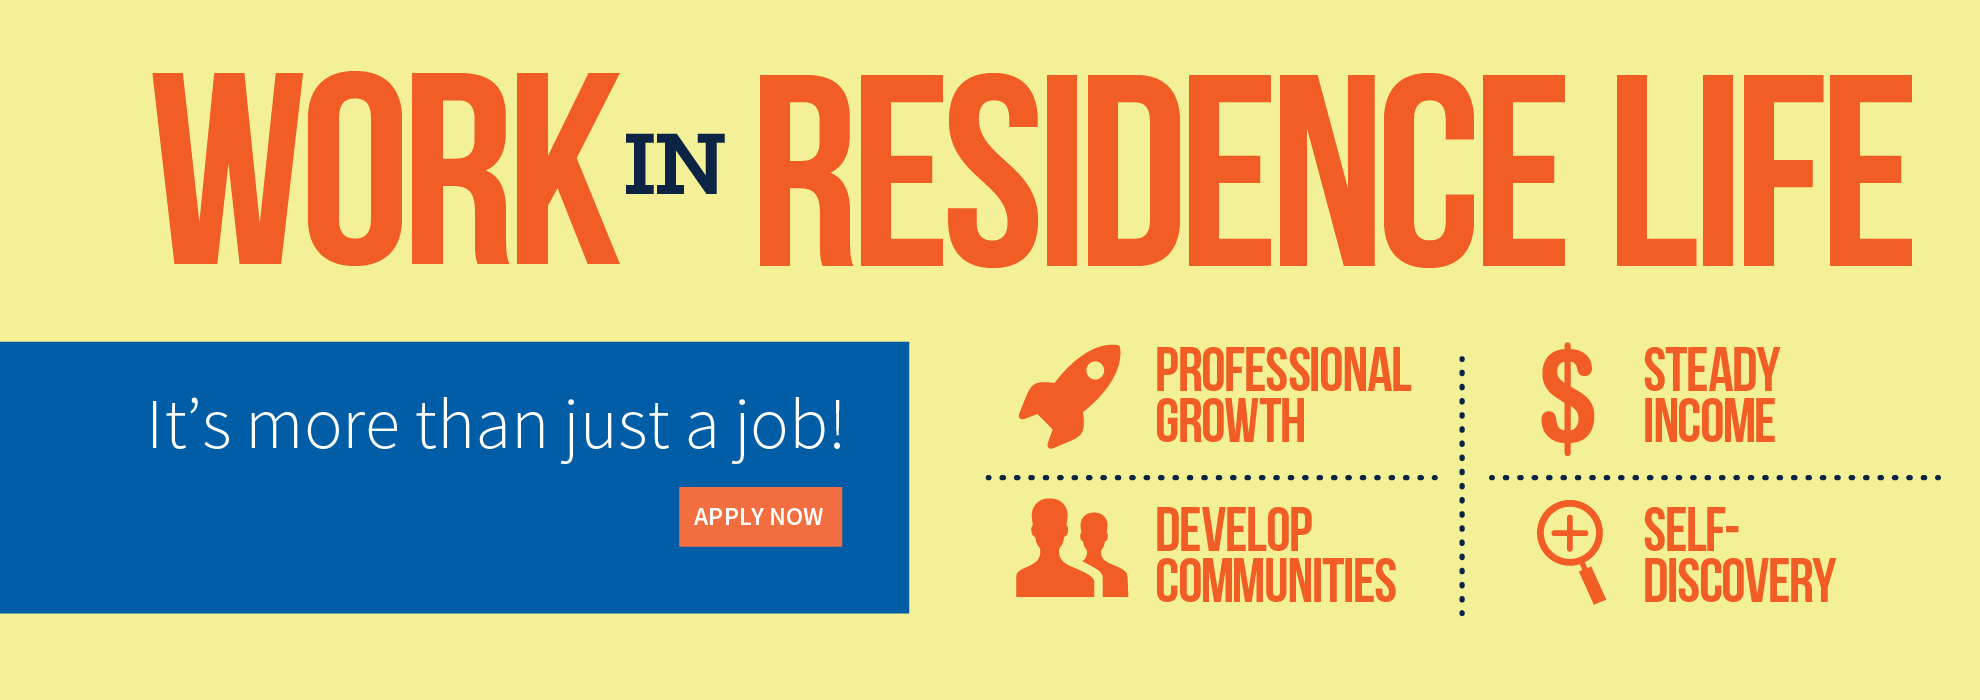 Work in Residence Life